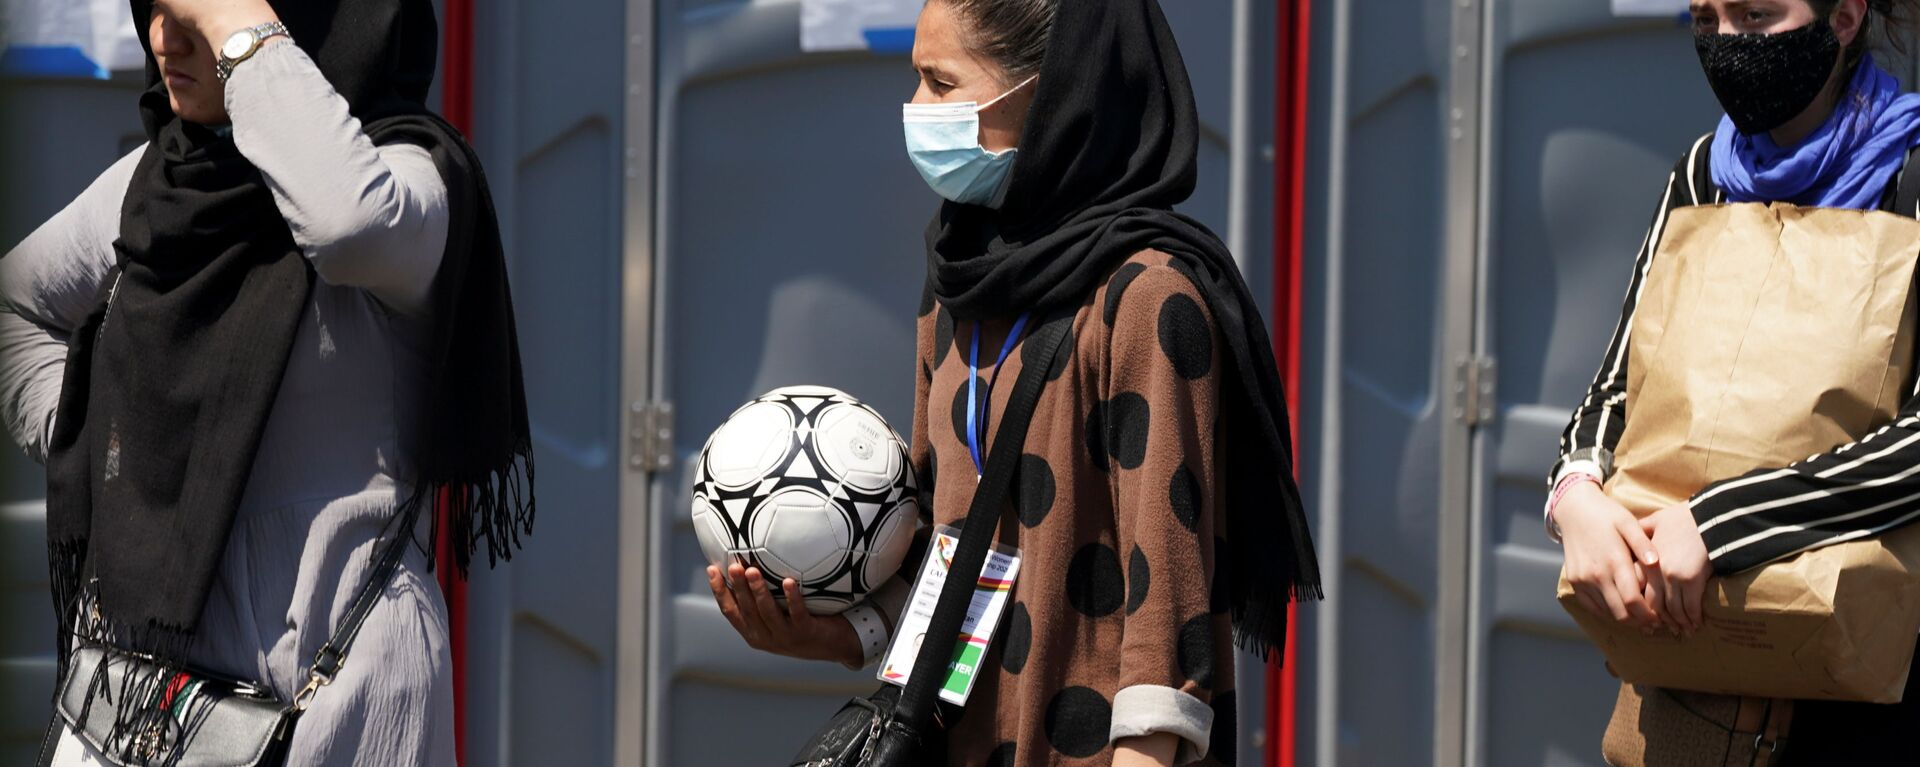 An Afghan woman holding a soccer ball and wearing a CAFA (Central Asian Football Association) credential, waits in line at a processing center for refugees evacuated from Afghanistan at the Dulles Expo Center near Dulles International Airport in Chantilly, Virginia, U.S., August 24, 2021 - Sputnik International, 1920, 20.09.2021